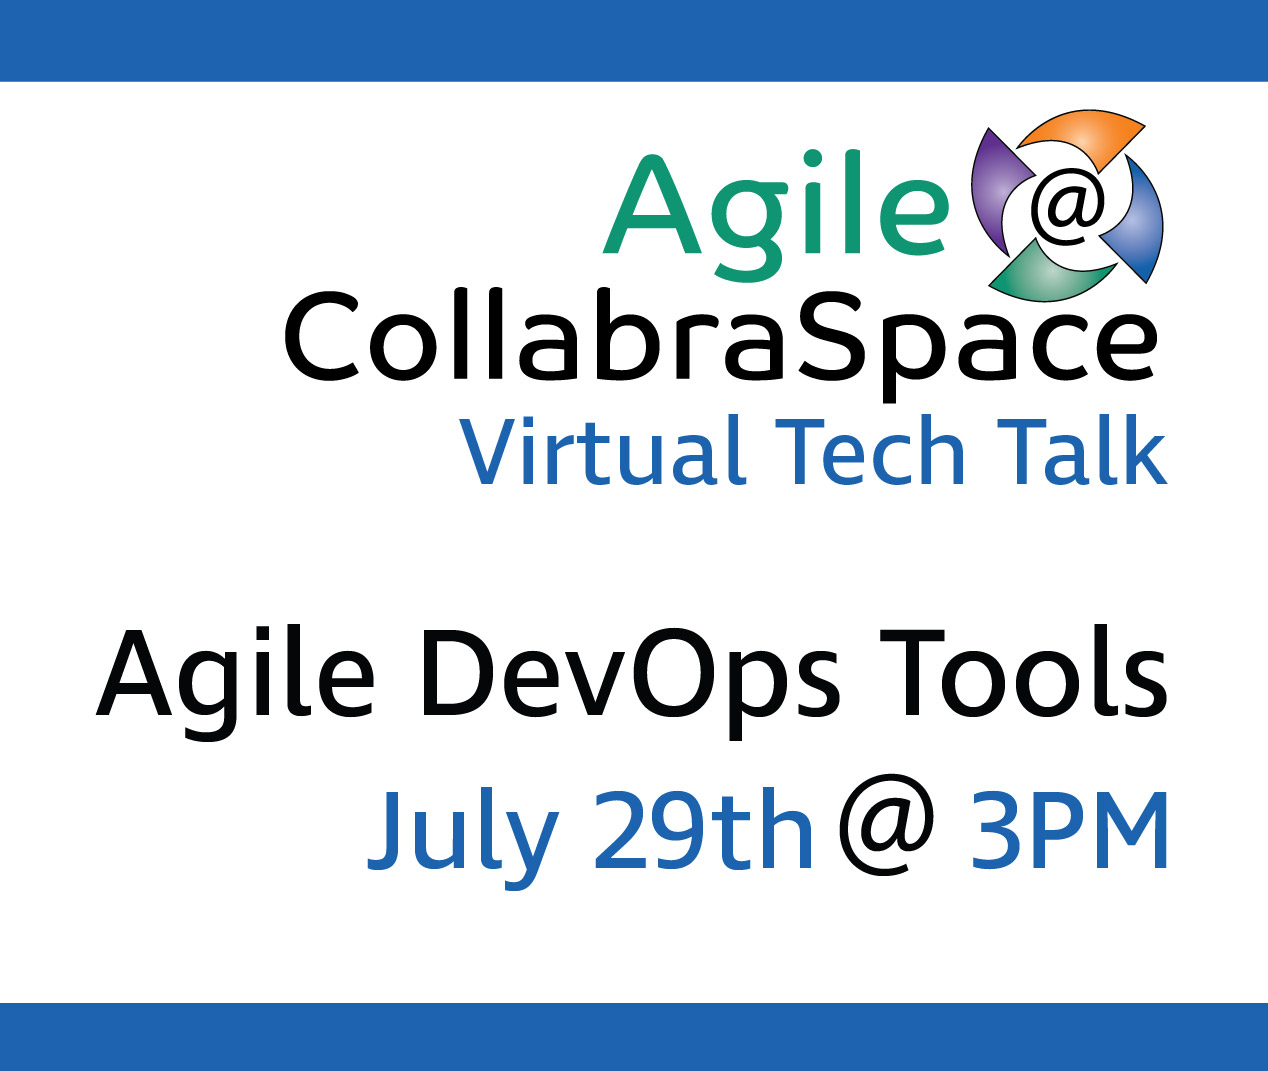 DevOps Tools Virtual Tech Talk: July 29th@ 3PM